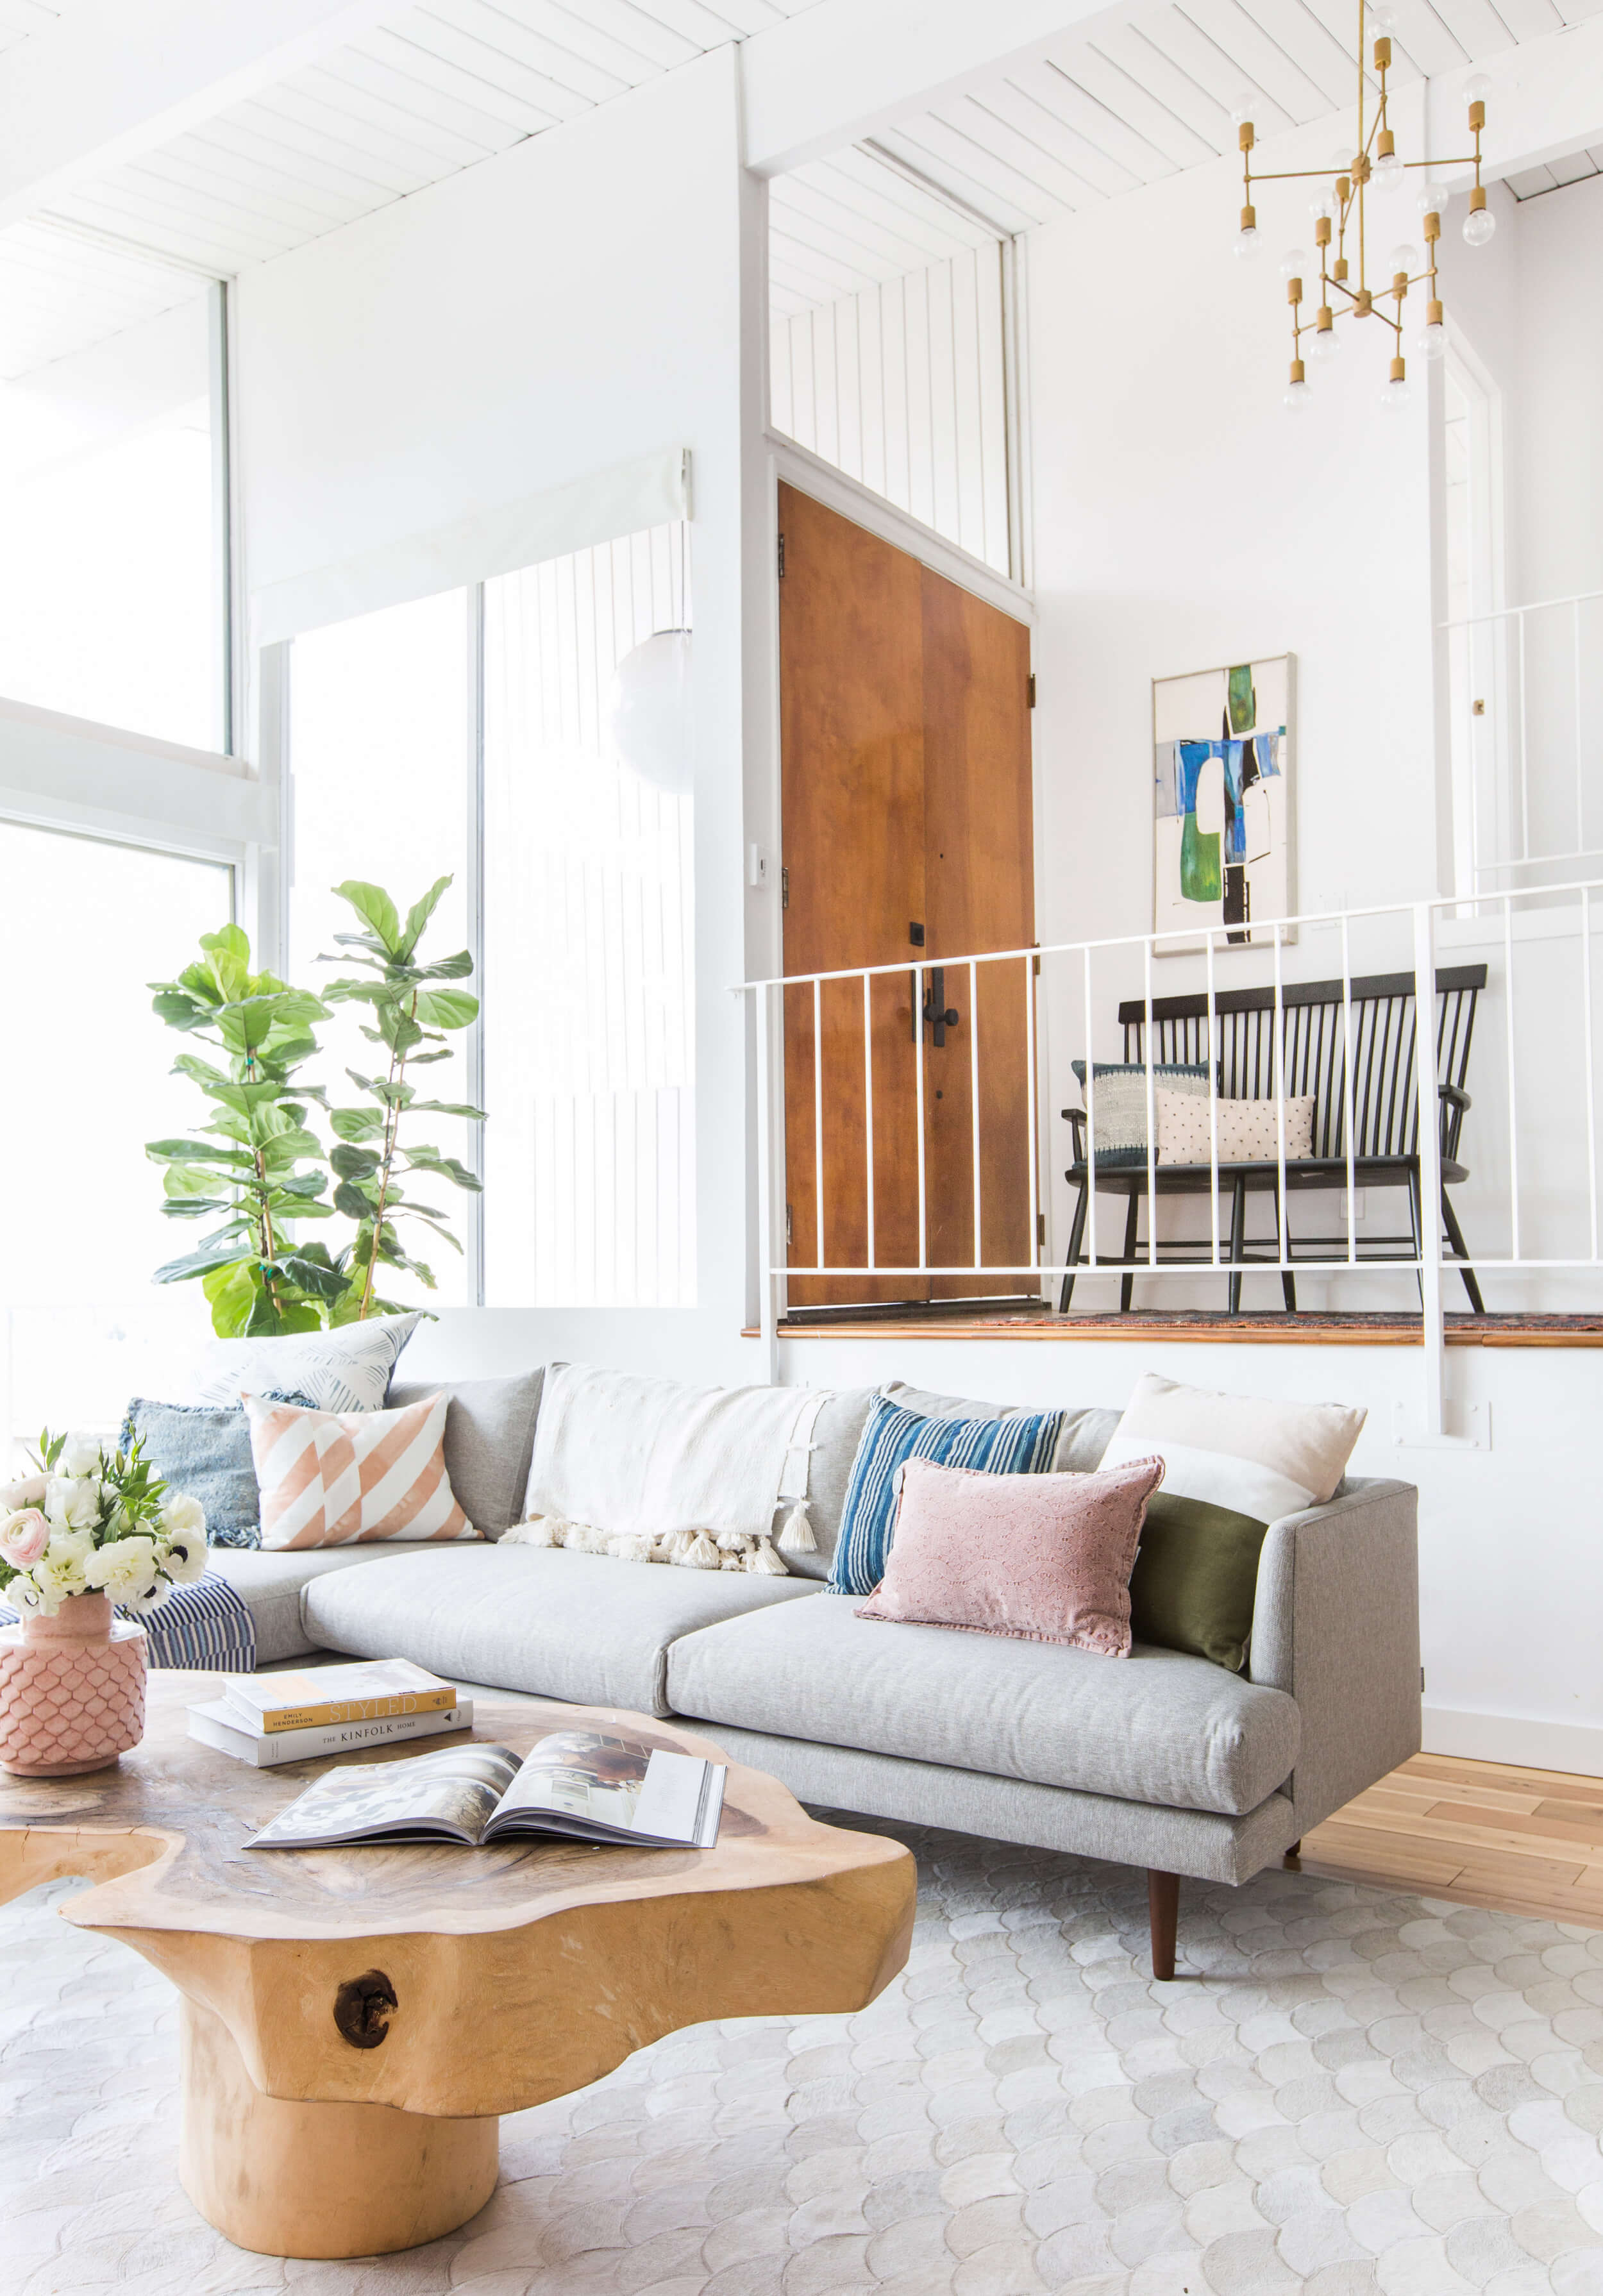 Drawn sofa stage design Sell_Boho_Mid How Room_Staged Century_Eclectic_Blue_White_Styled_Couch_Sectional_Staged2 to